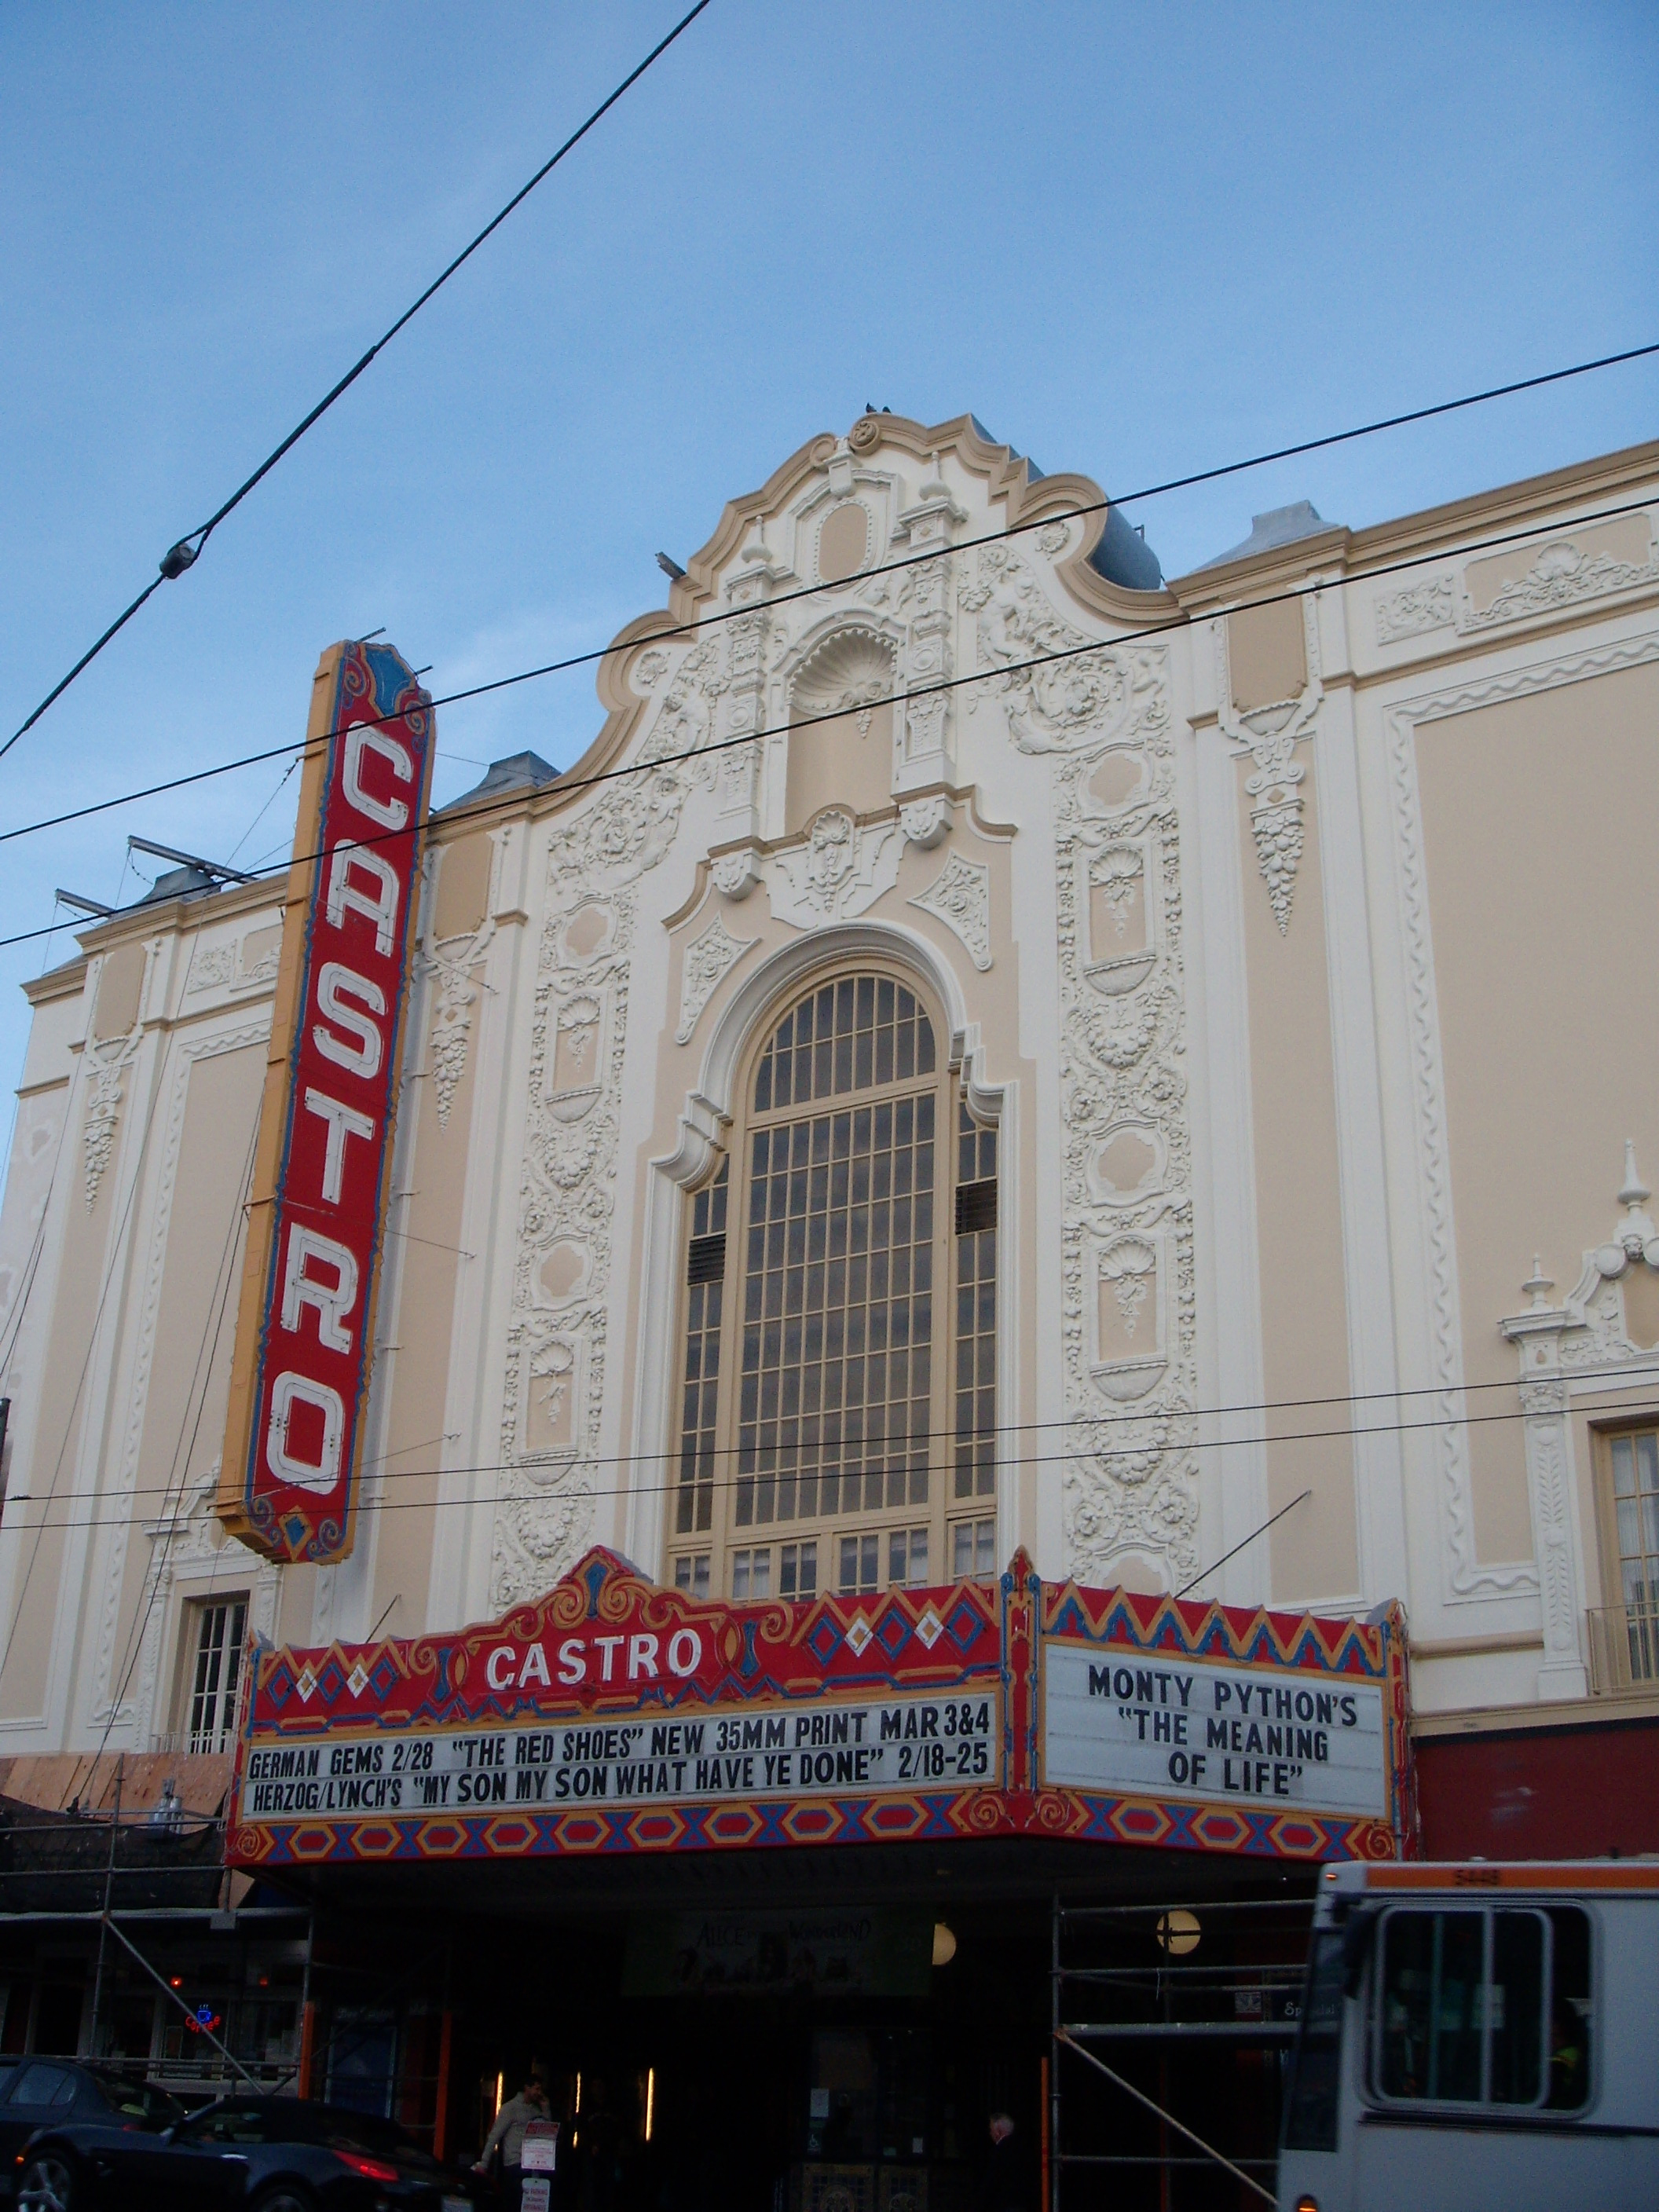 Freshly painted Castro Theatre by day